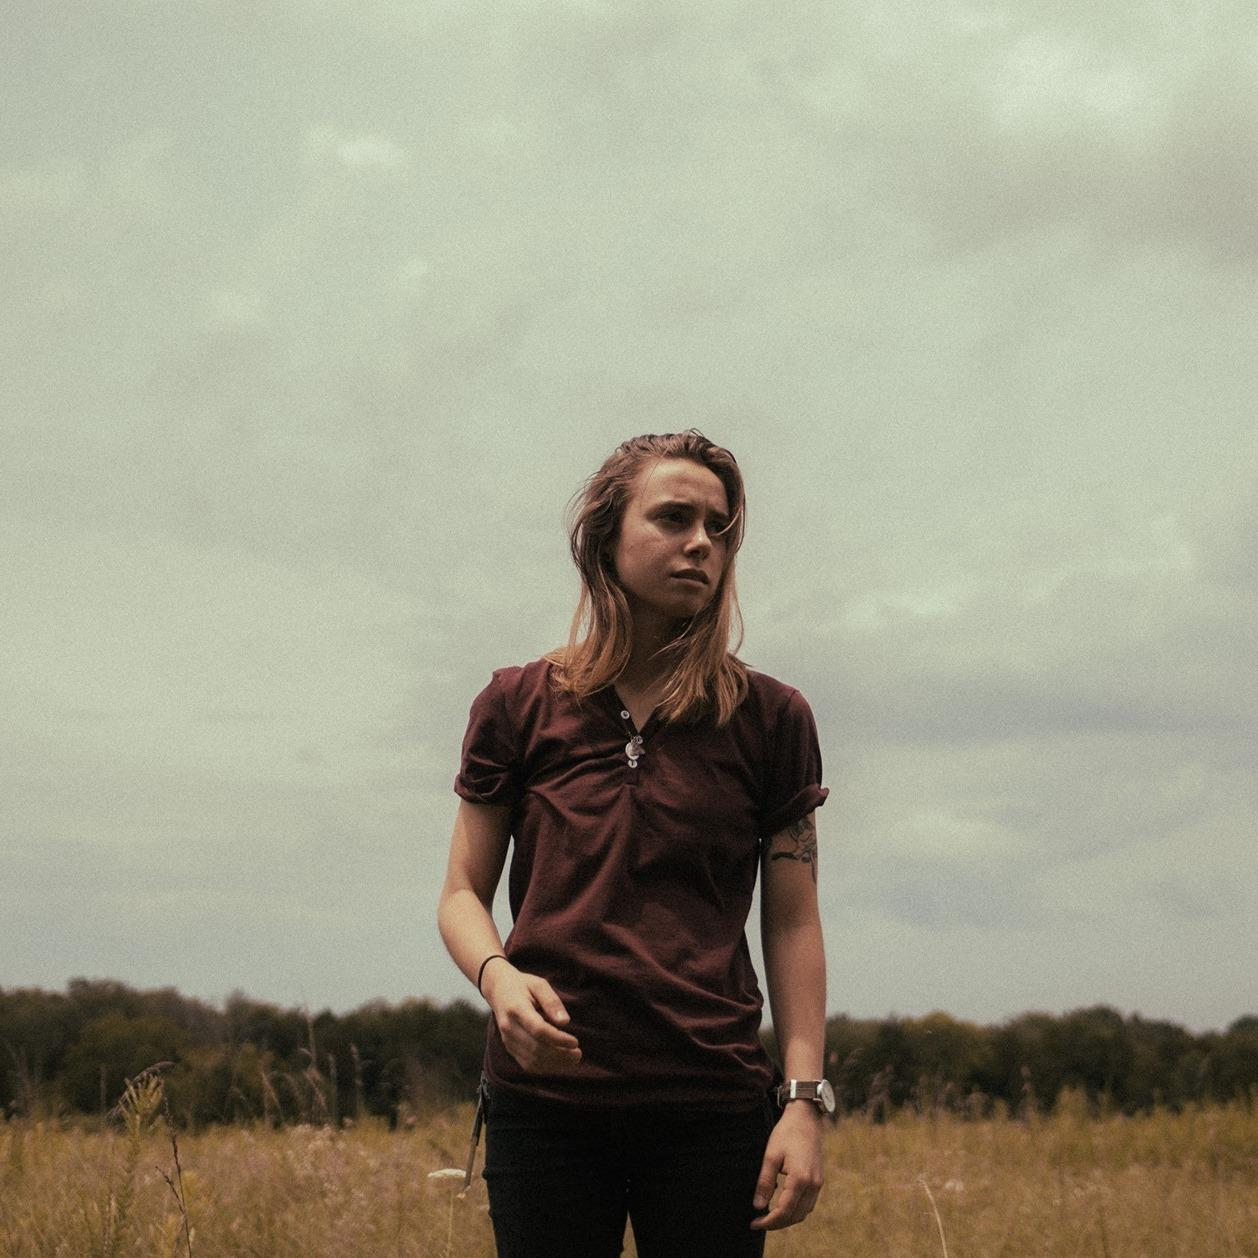 Julien Baker's concert at Town Hall on Oct. 27 reminded the audience that pain and joy come in waves in life, one just has to learn to balance both.